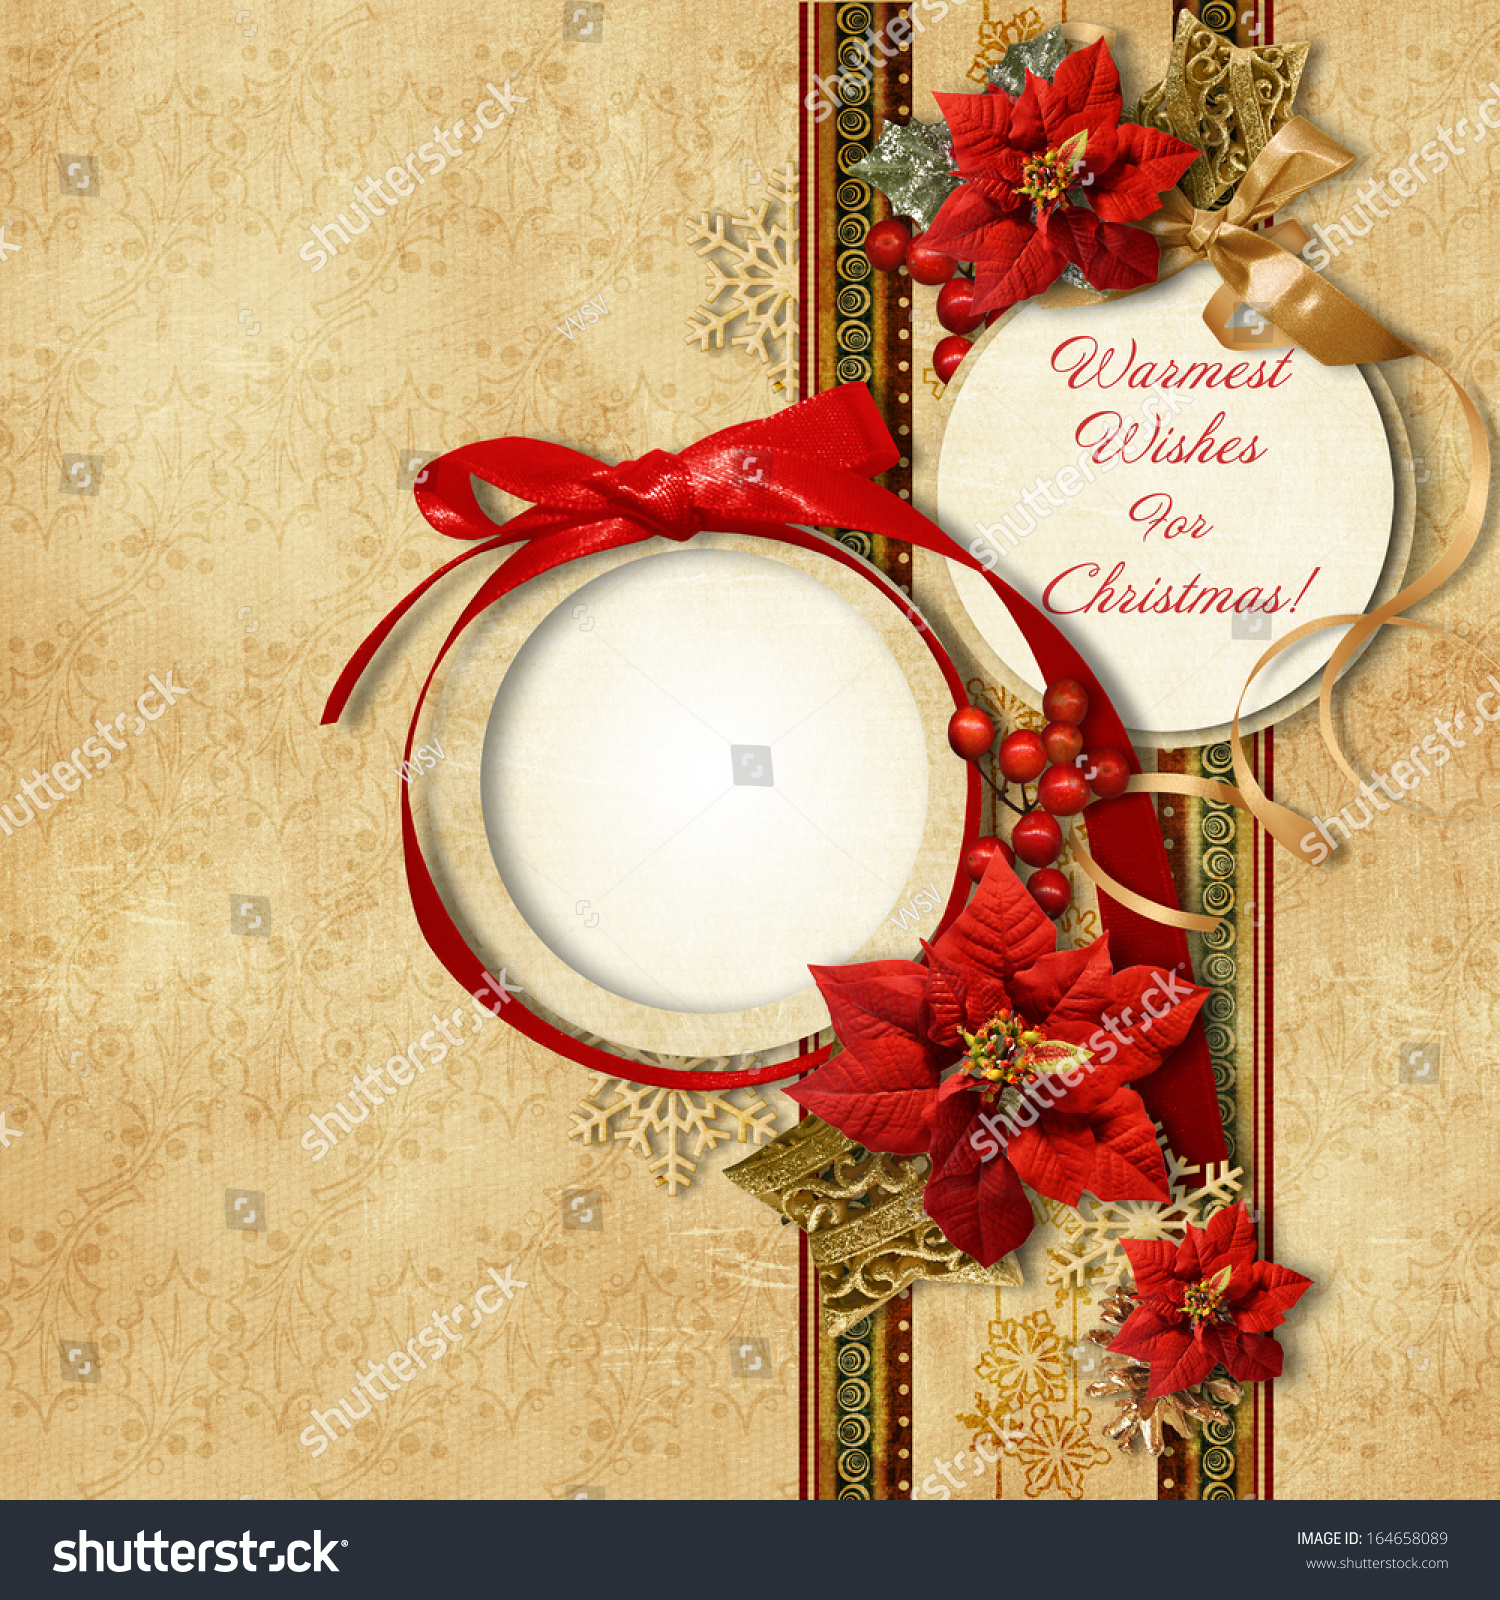 Merry christmas vintage card with frame poinsettia stock for Poinsettia christmas tree frame